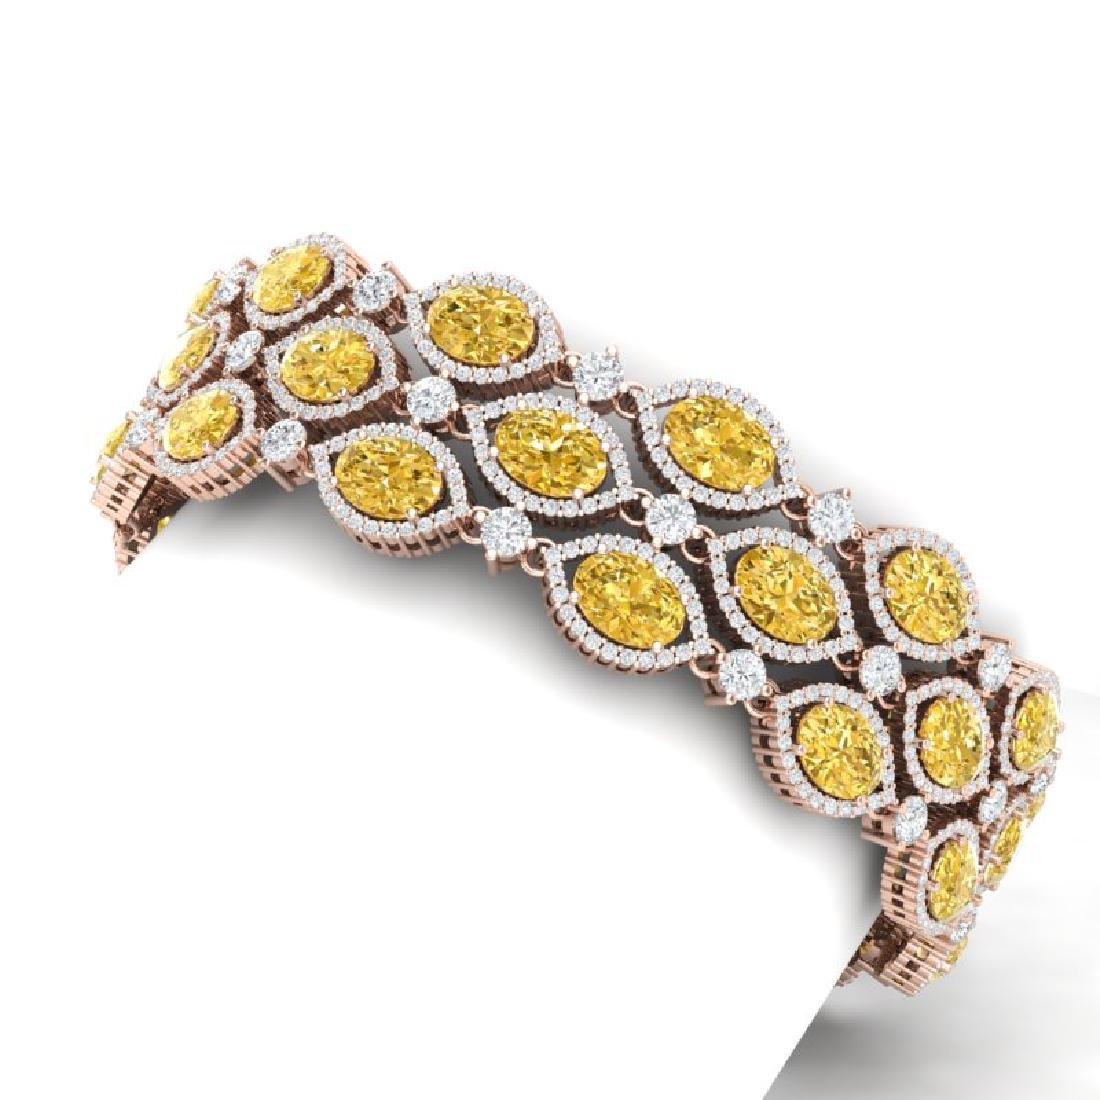 43.84 CTW Royalty Canary Citrine & VS Diamond Bracelet